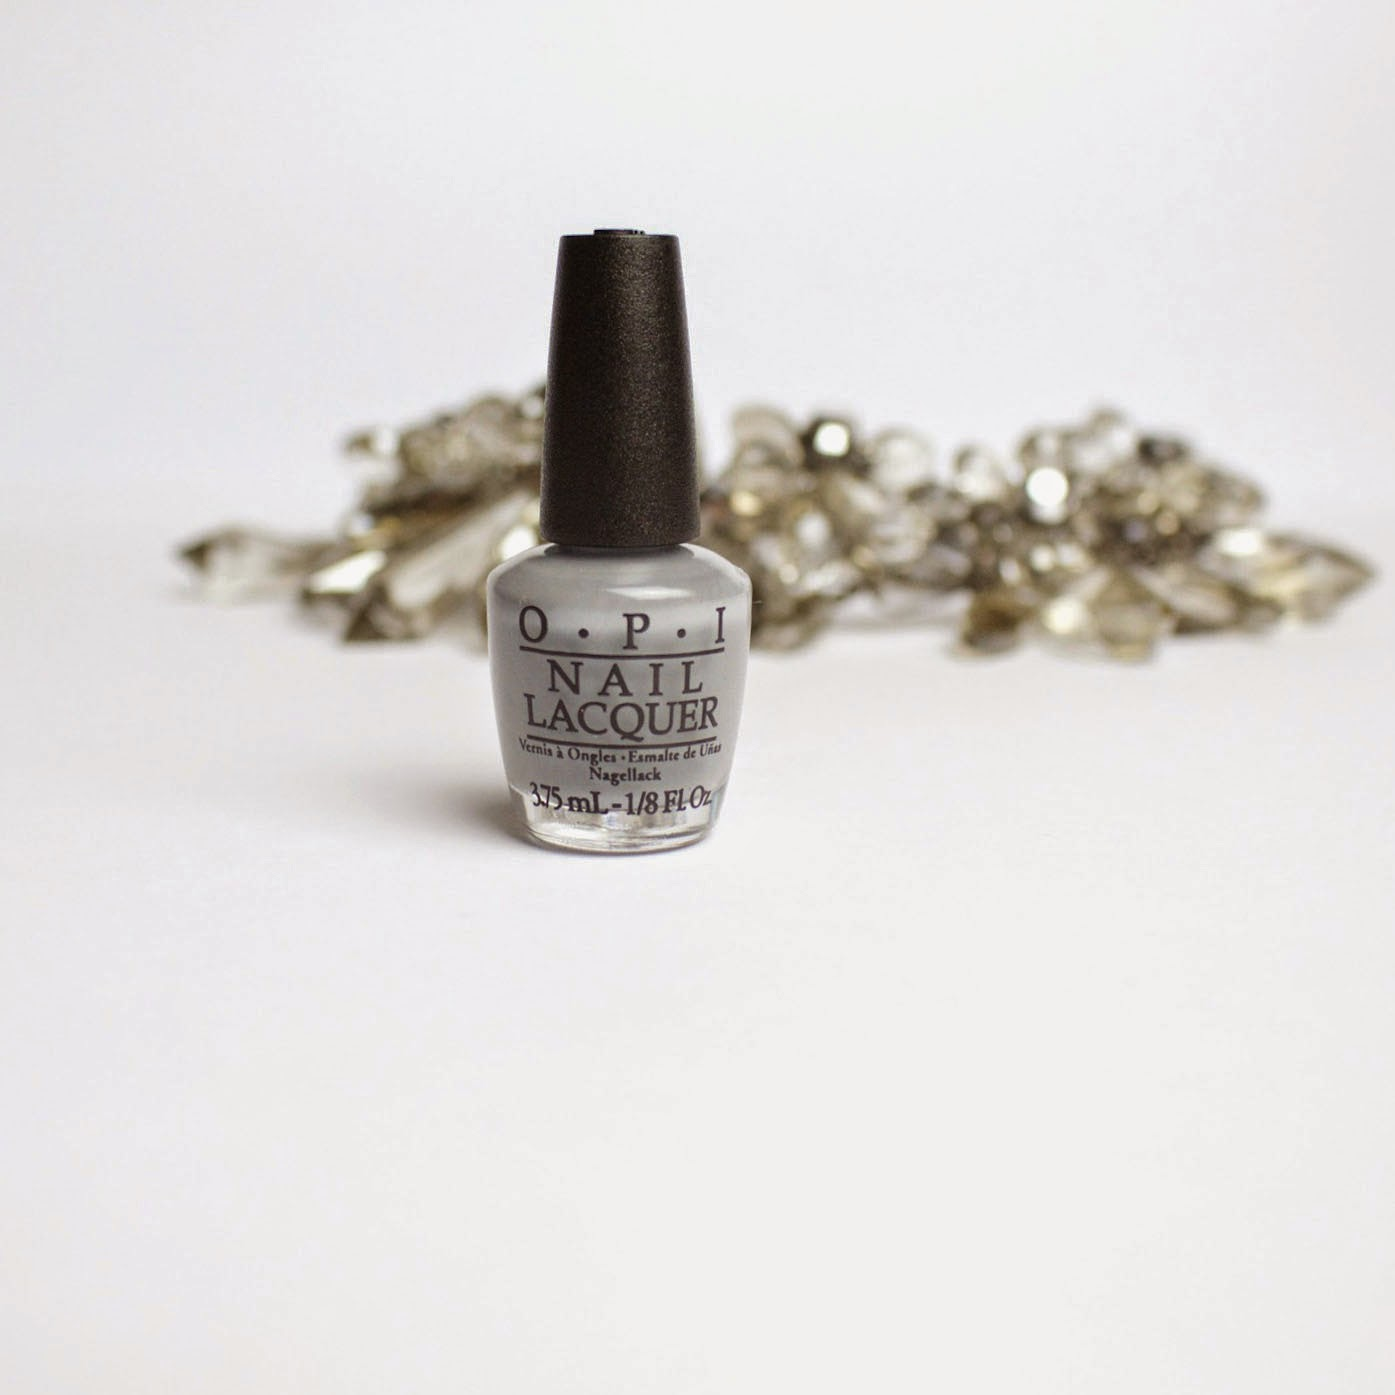 Opi-Shades-of-grey-LE-Swatch-Shoppinator-Cement-the-deal-Mini-Set-50-Shades-of-Grey-My-Silk-Tie-Dark-Side-of-the-Mod-Romantically-Involved-Shine-for-mw-Embrace-the-Grey-Swatch